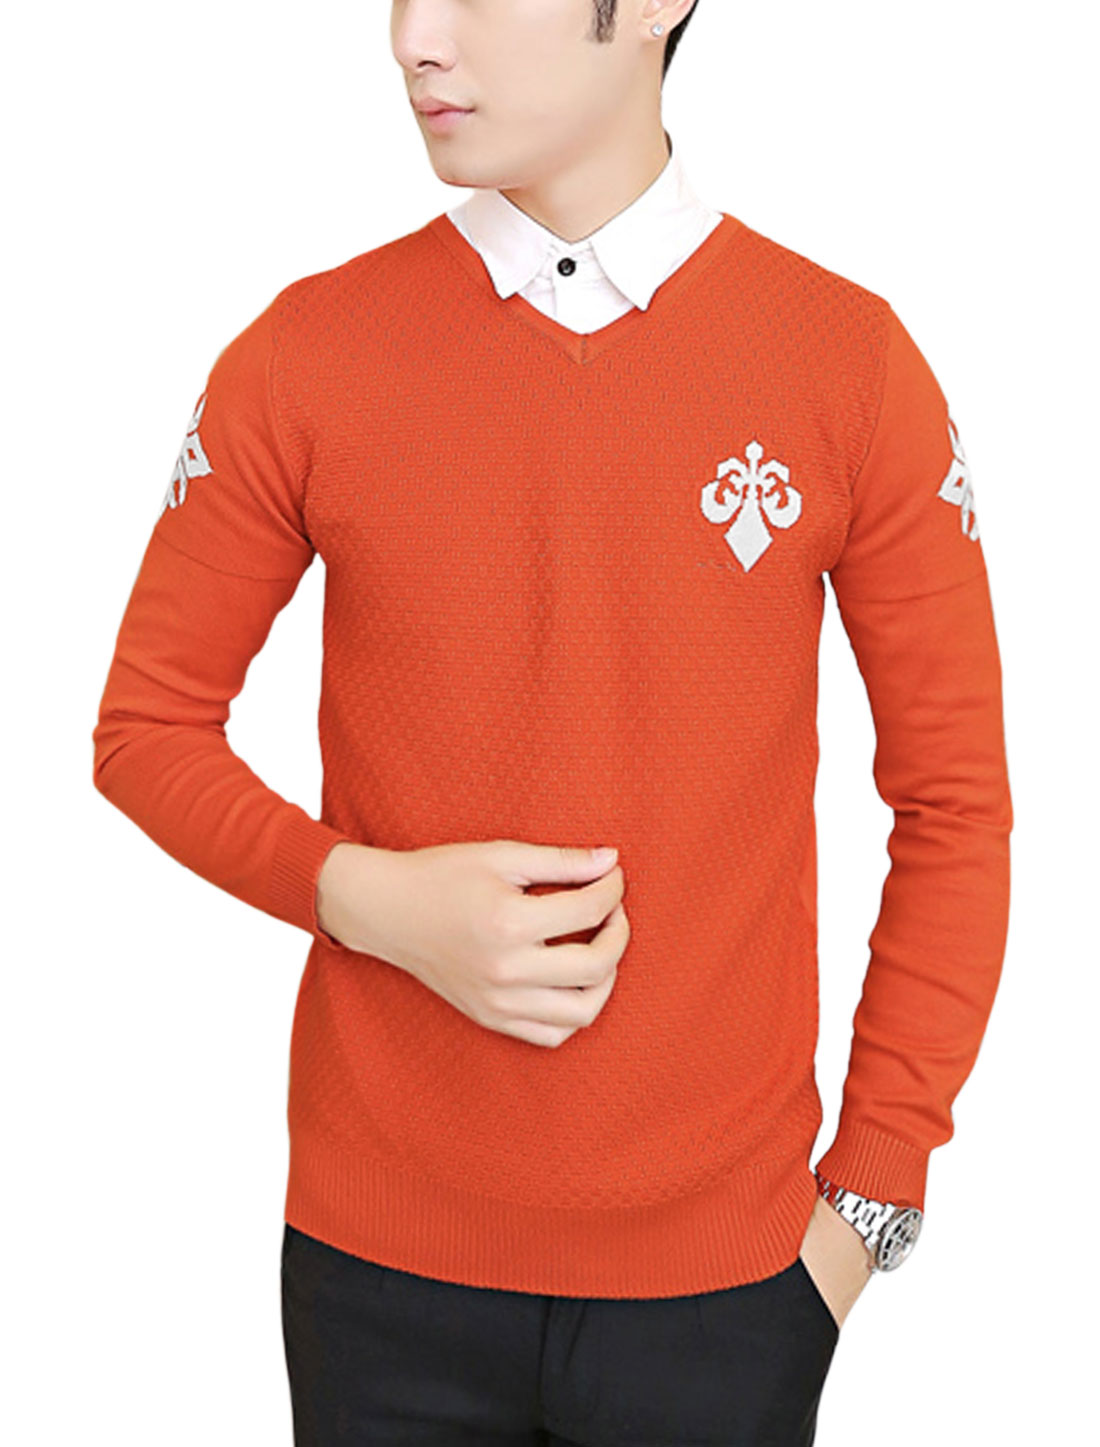 Slim Fit Pullover V Neck Letters Pattern Knit Shirt for Men Orange Red M